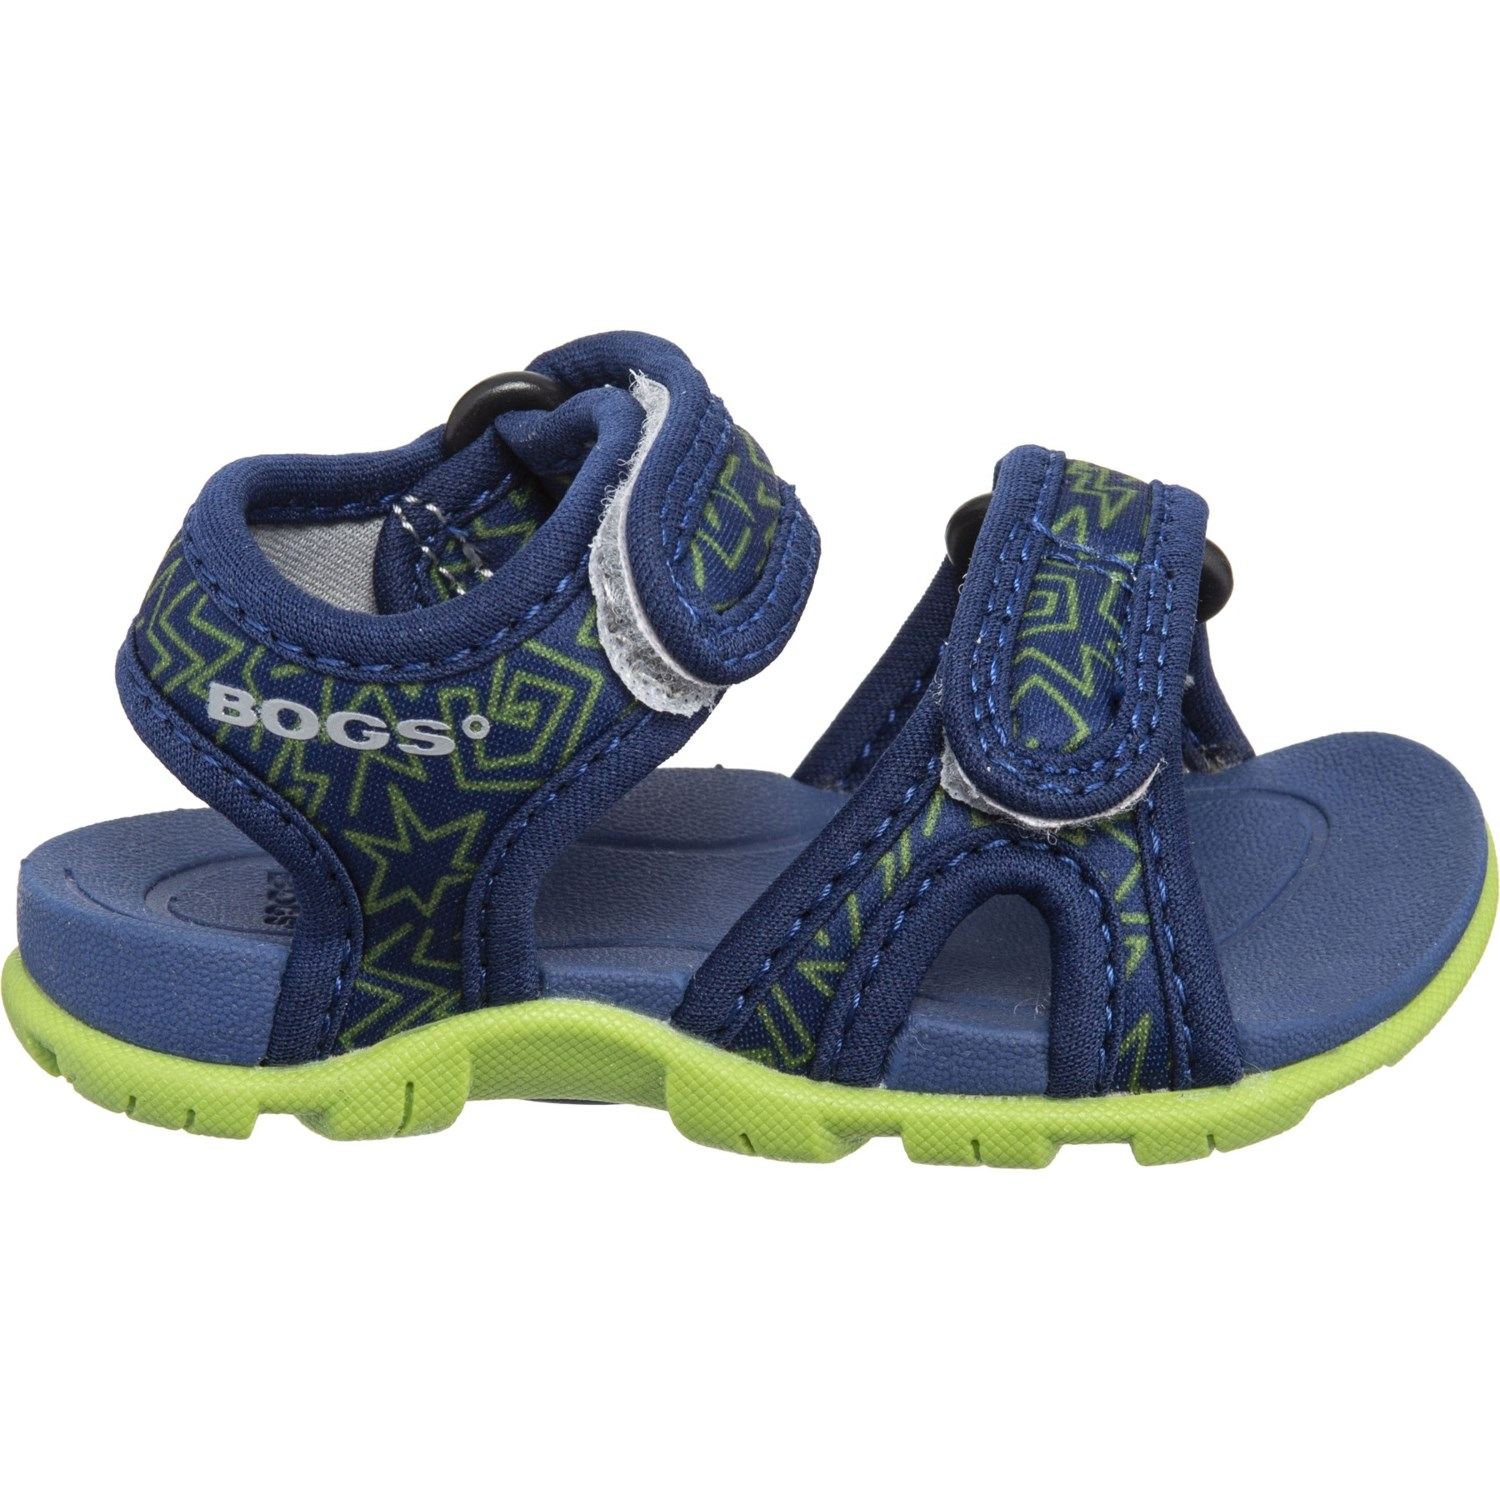 abf4202e2736 Bogs Footwear Whitefish 80 s Sport Sandals (For Boys) - Save 55%